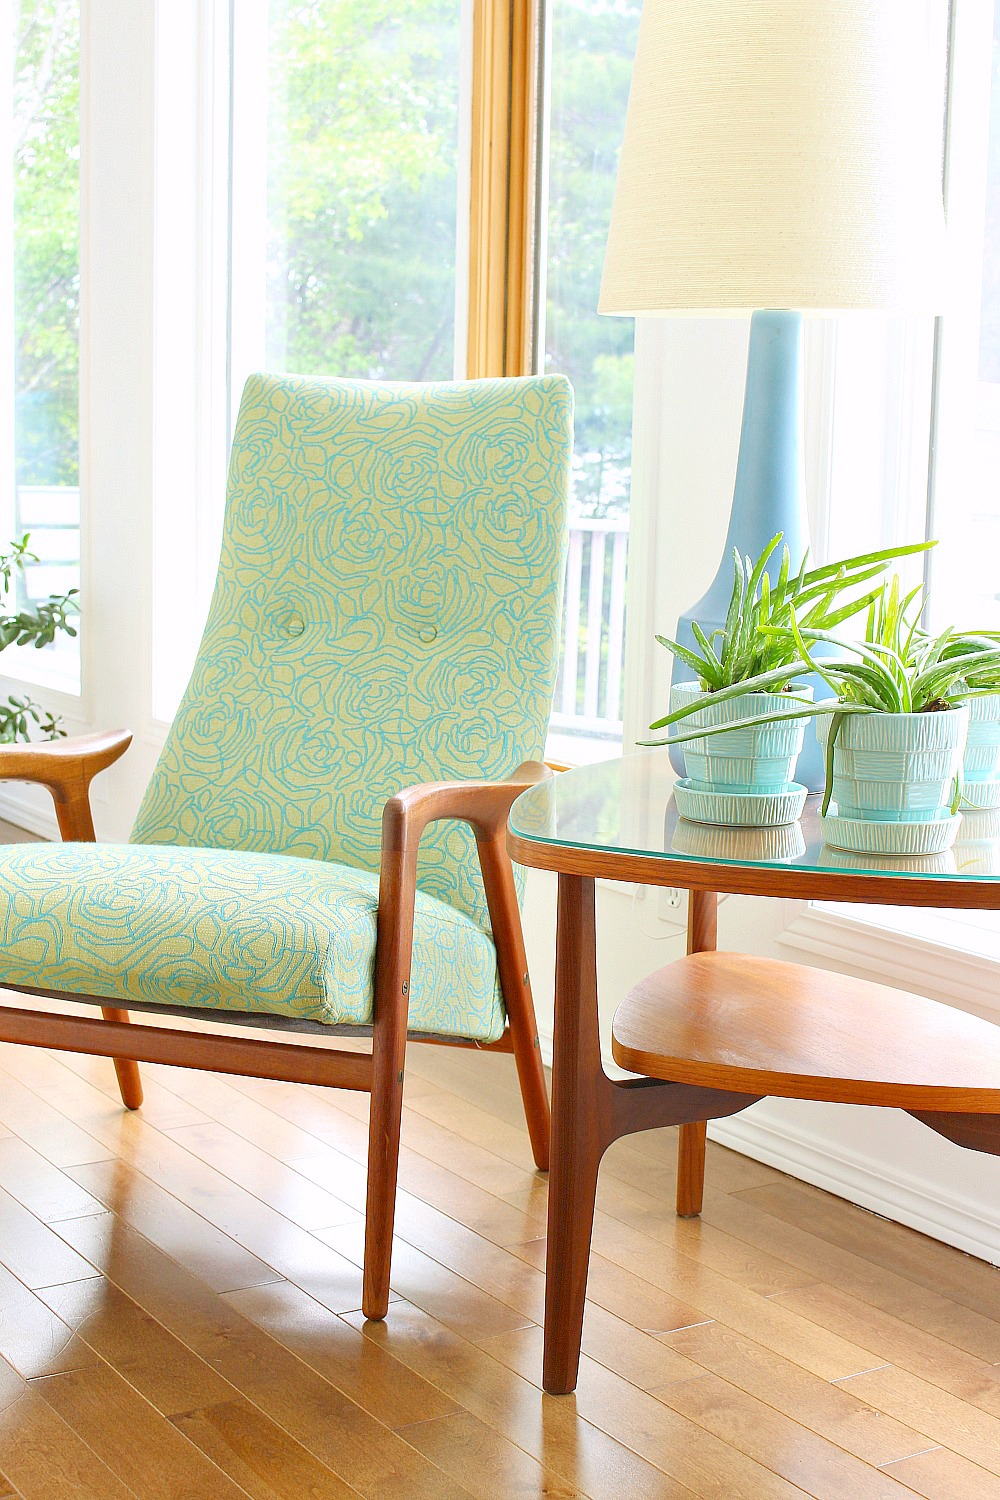 Yngve Ekstrom Mingo Chair Reupholstered in Mint Fabric